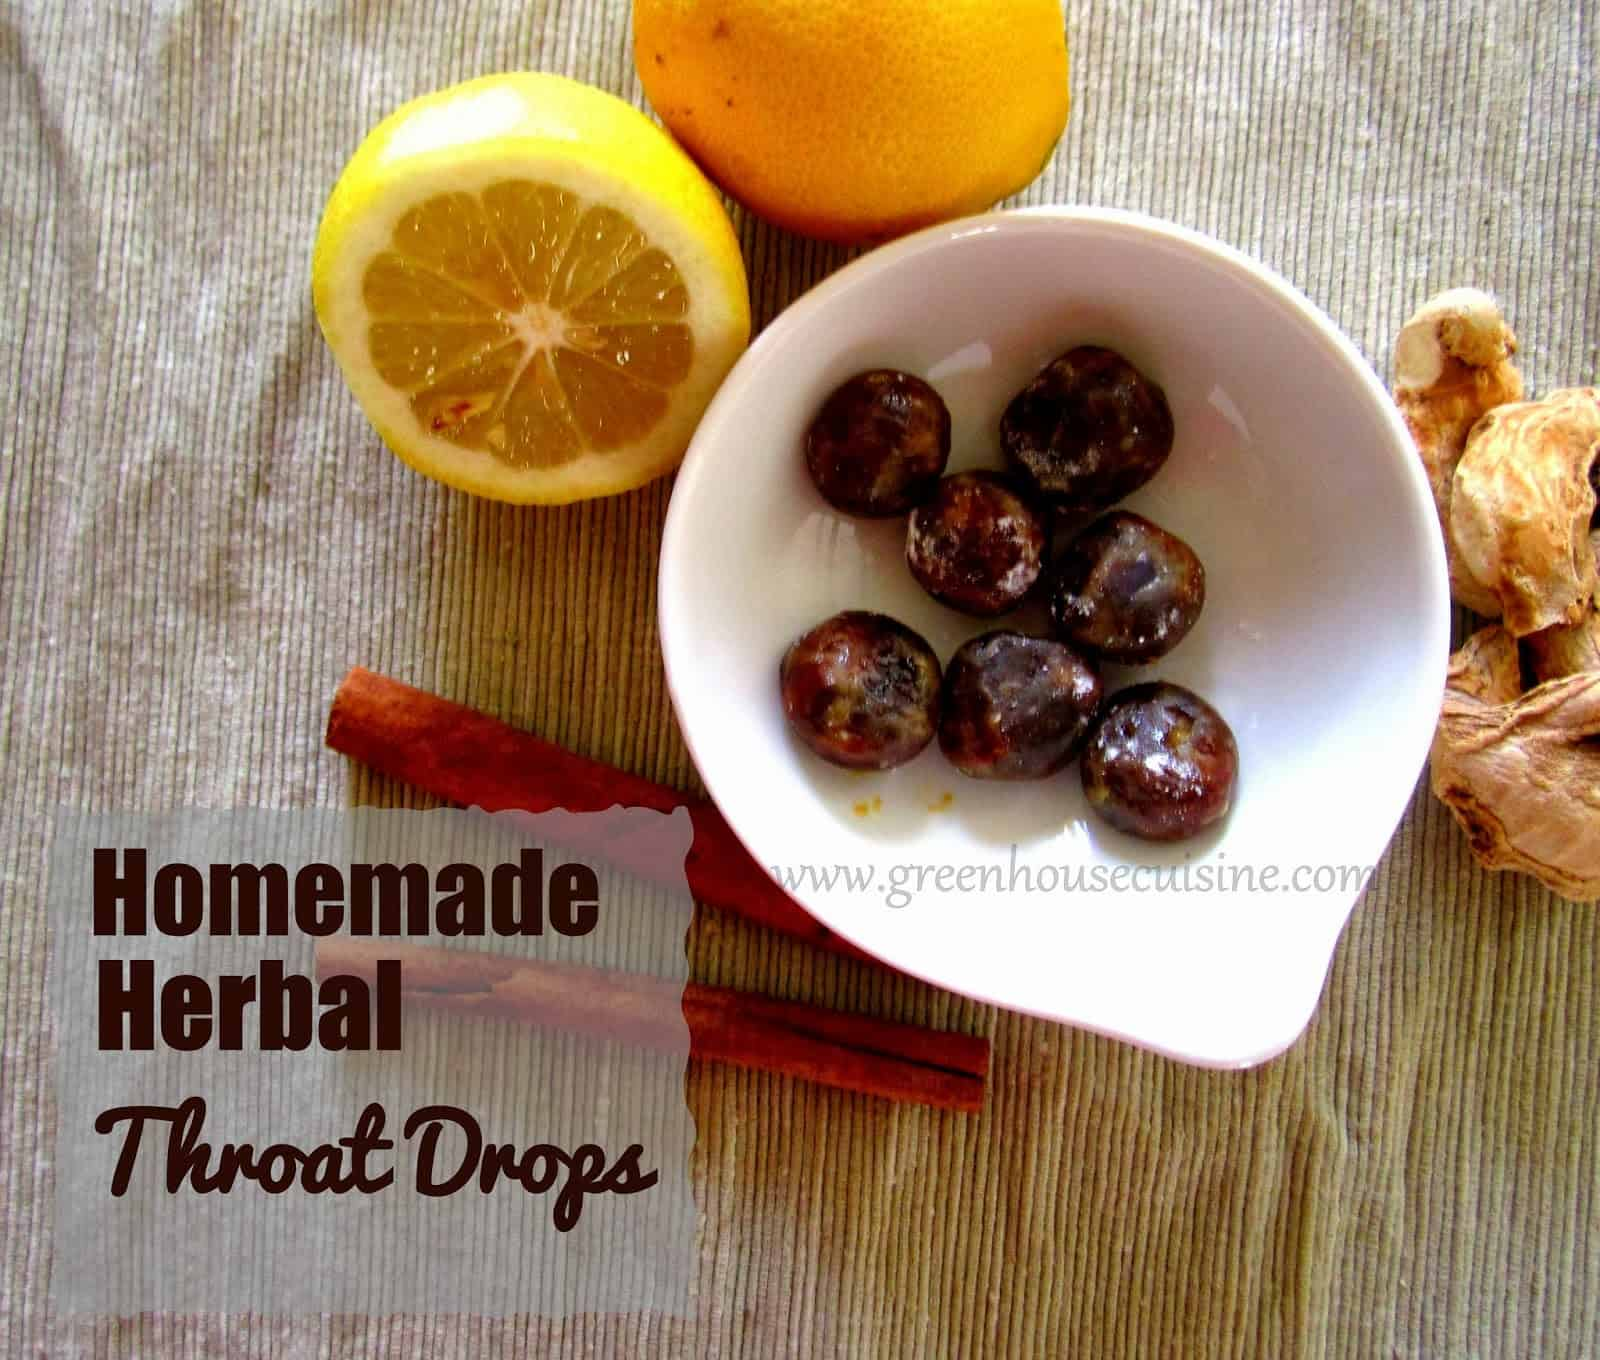 Homemade herbal throat drops